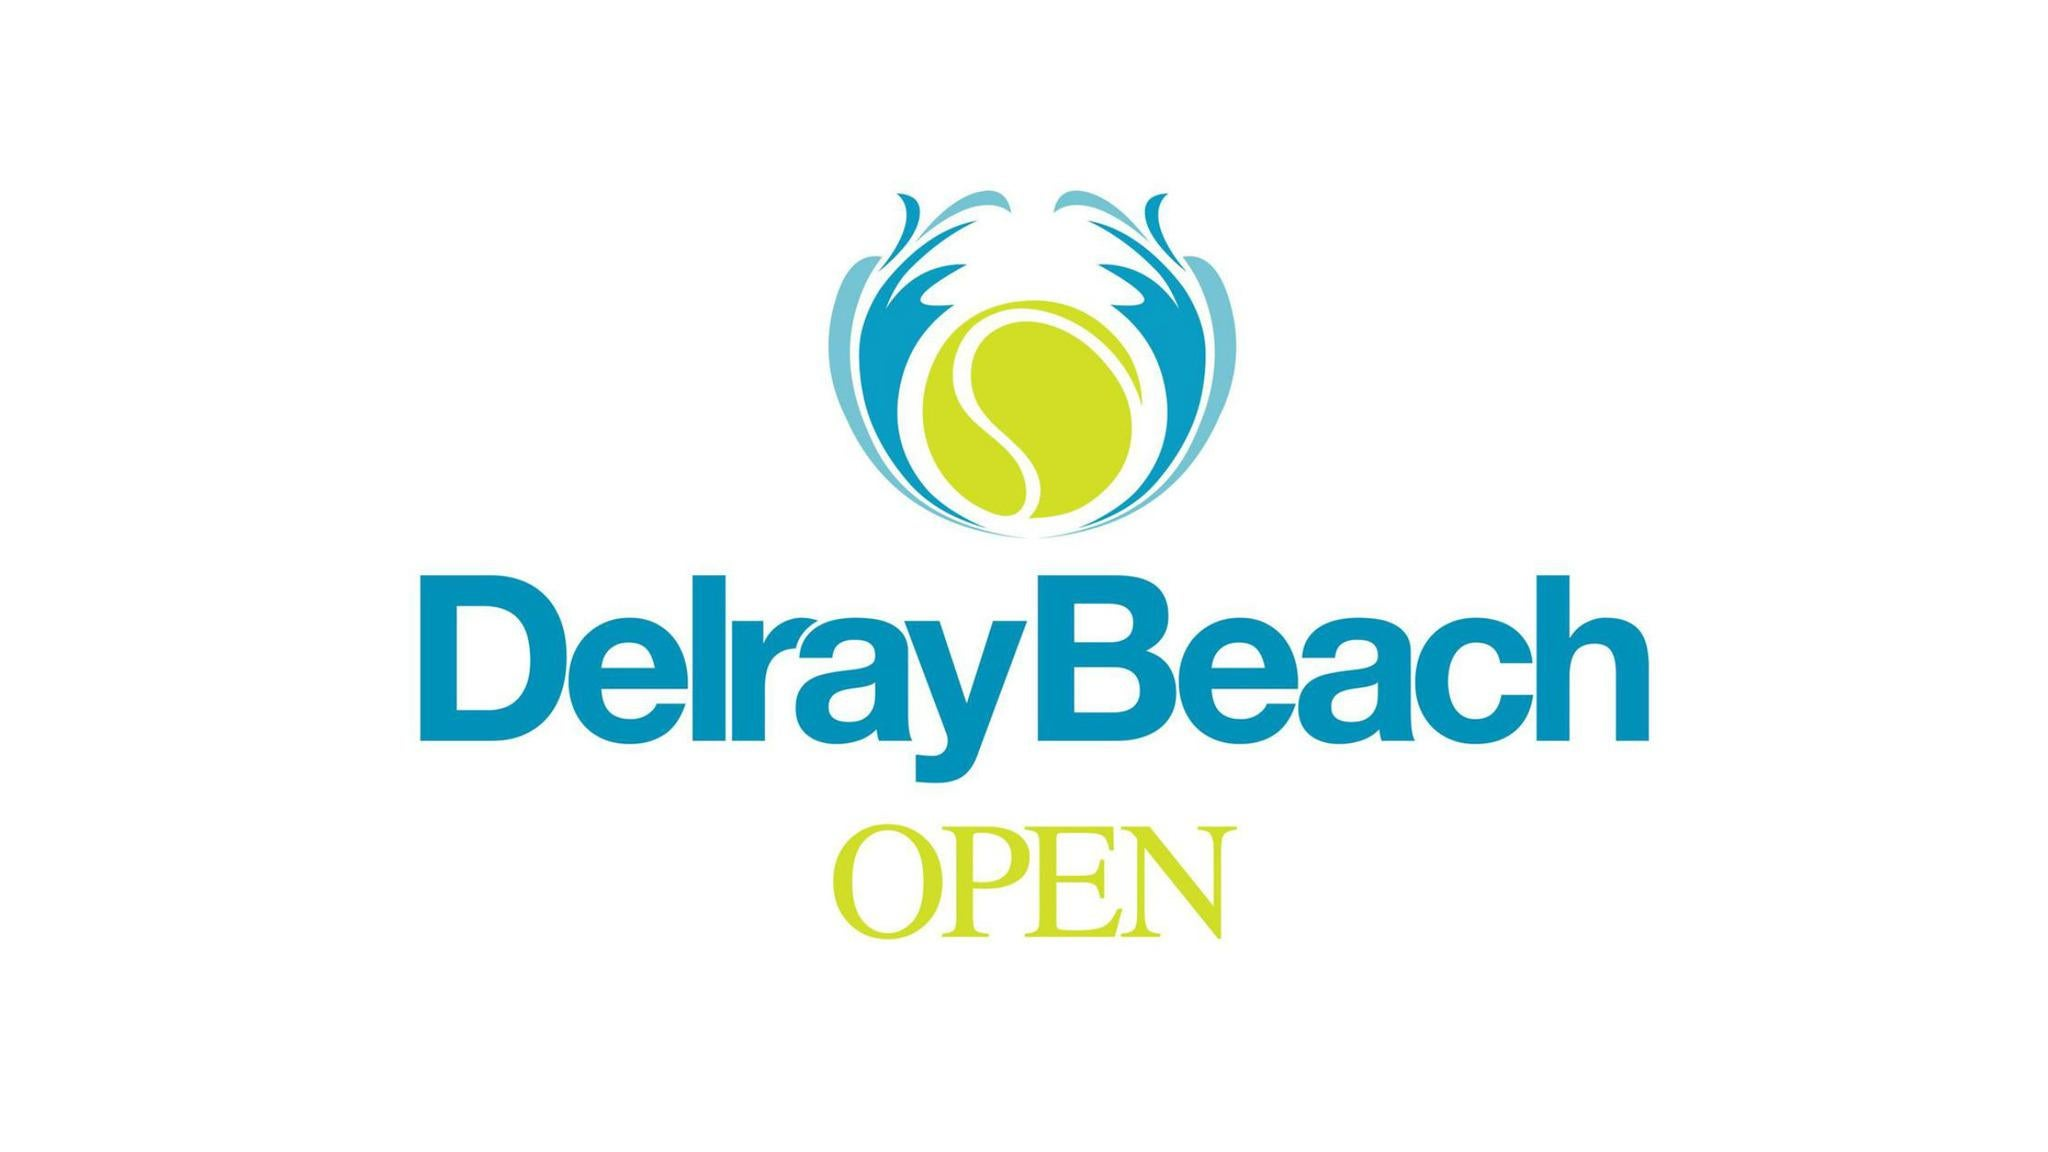 2017 Delray Beach Open at Delray Beach Tennis Complex